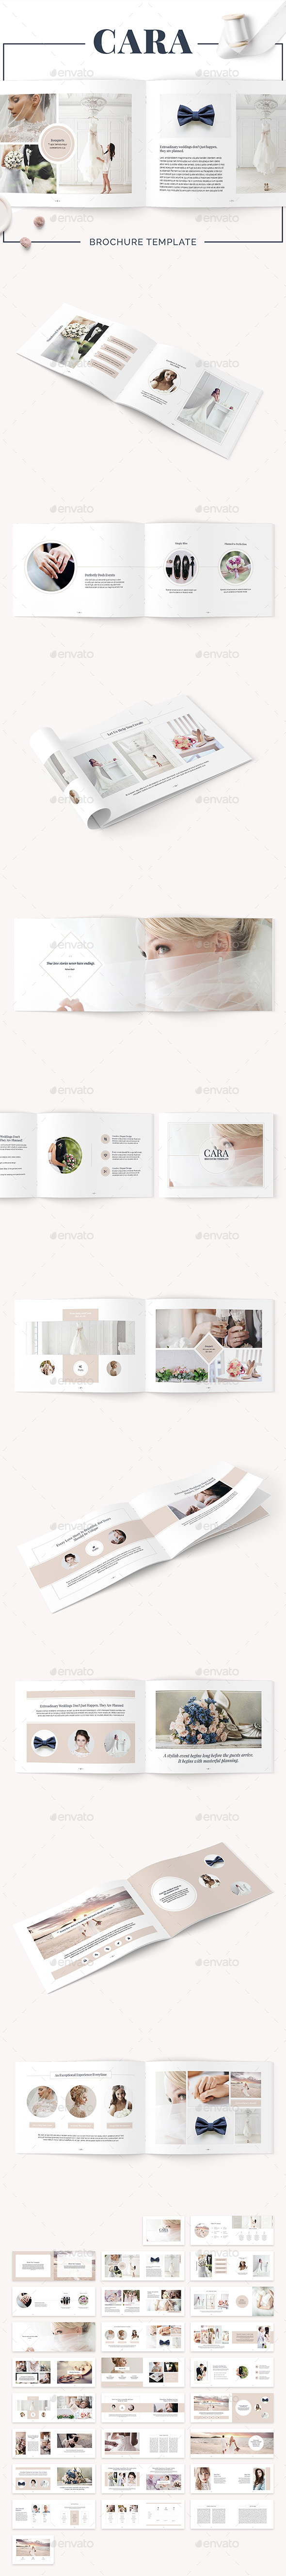 Cara Brochure Template - Catalogs Brochures